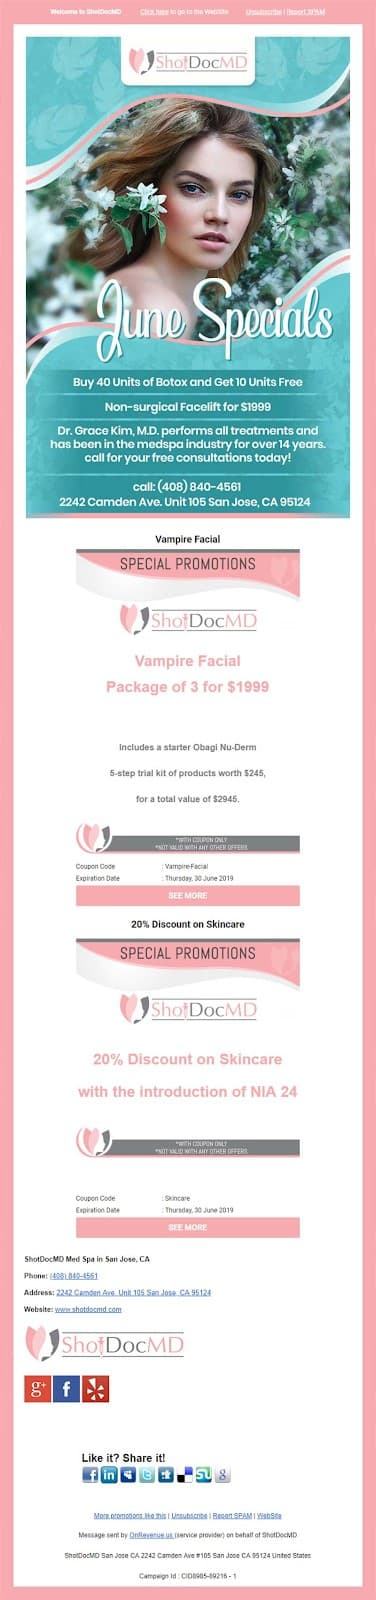 Email newsletter by ShoDocMD